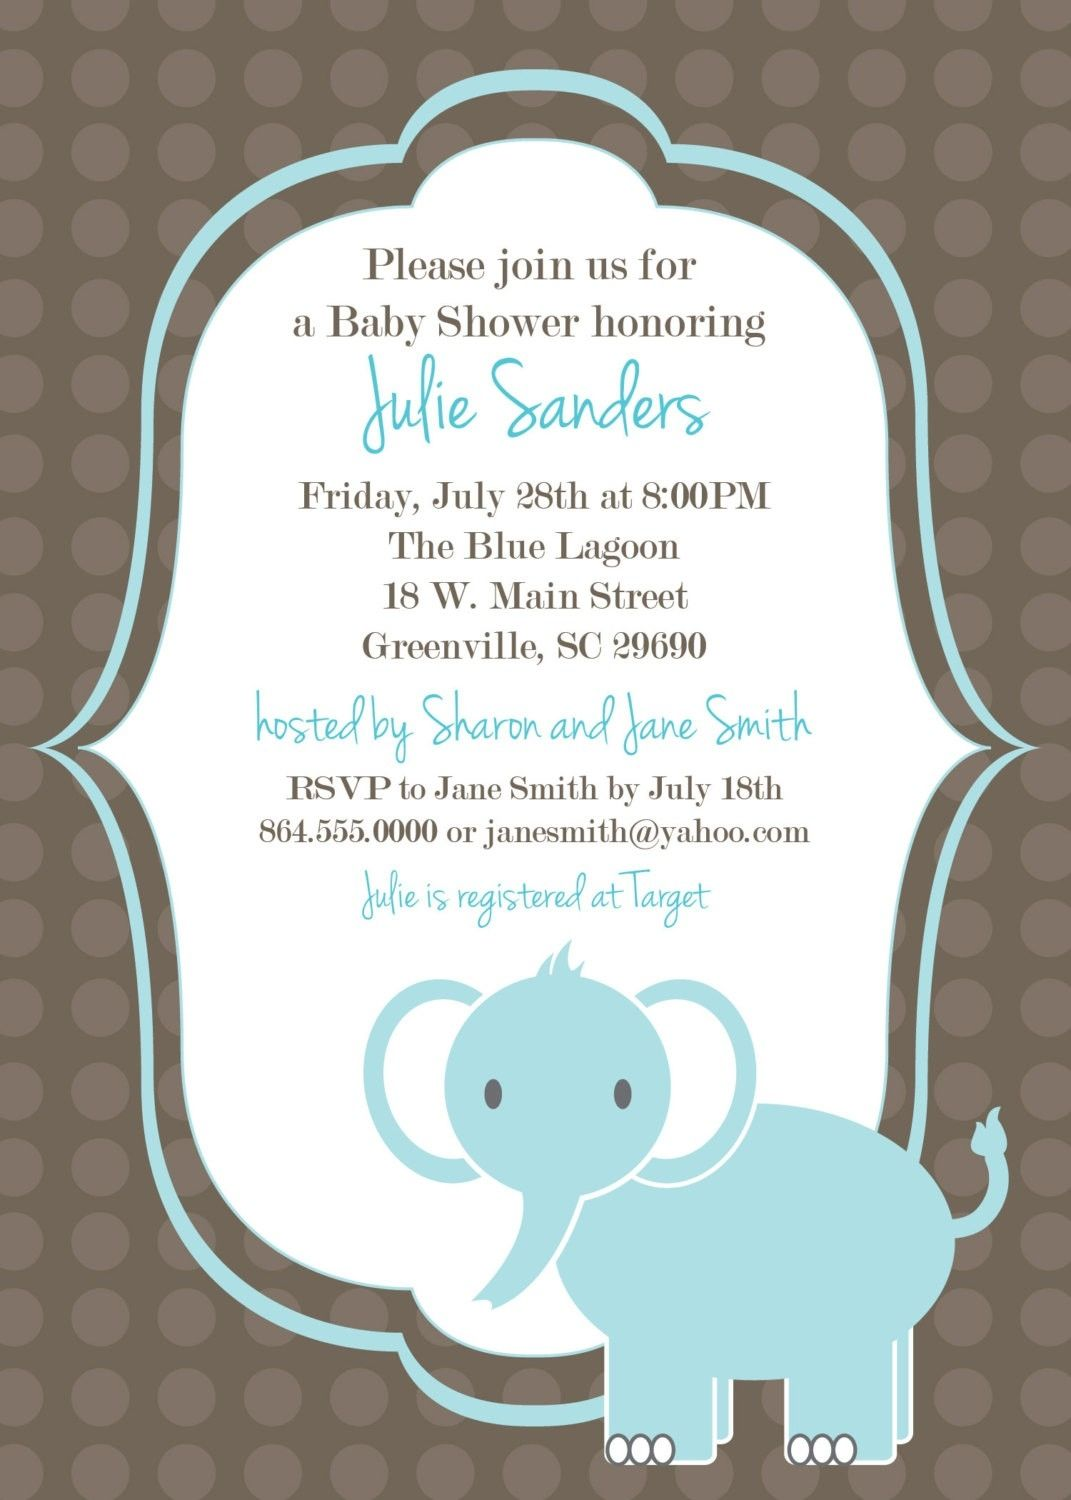 Baby Shower Invitations For Word Templates Gorgeous Download Baby Shower Invitation Templates Word  Setup  Pinterest .